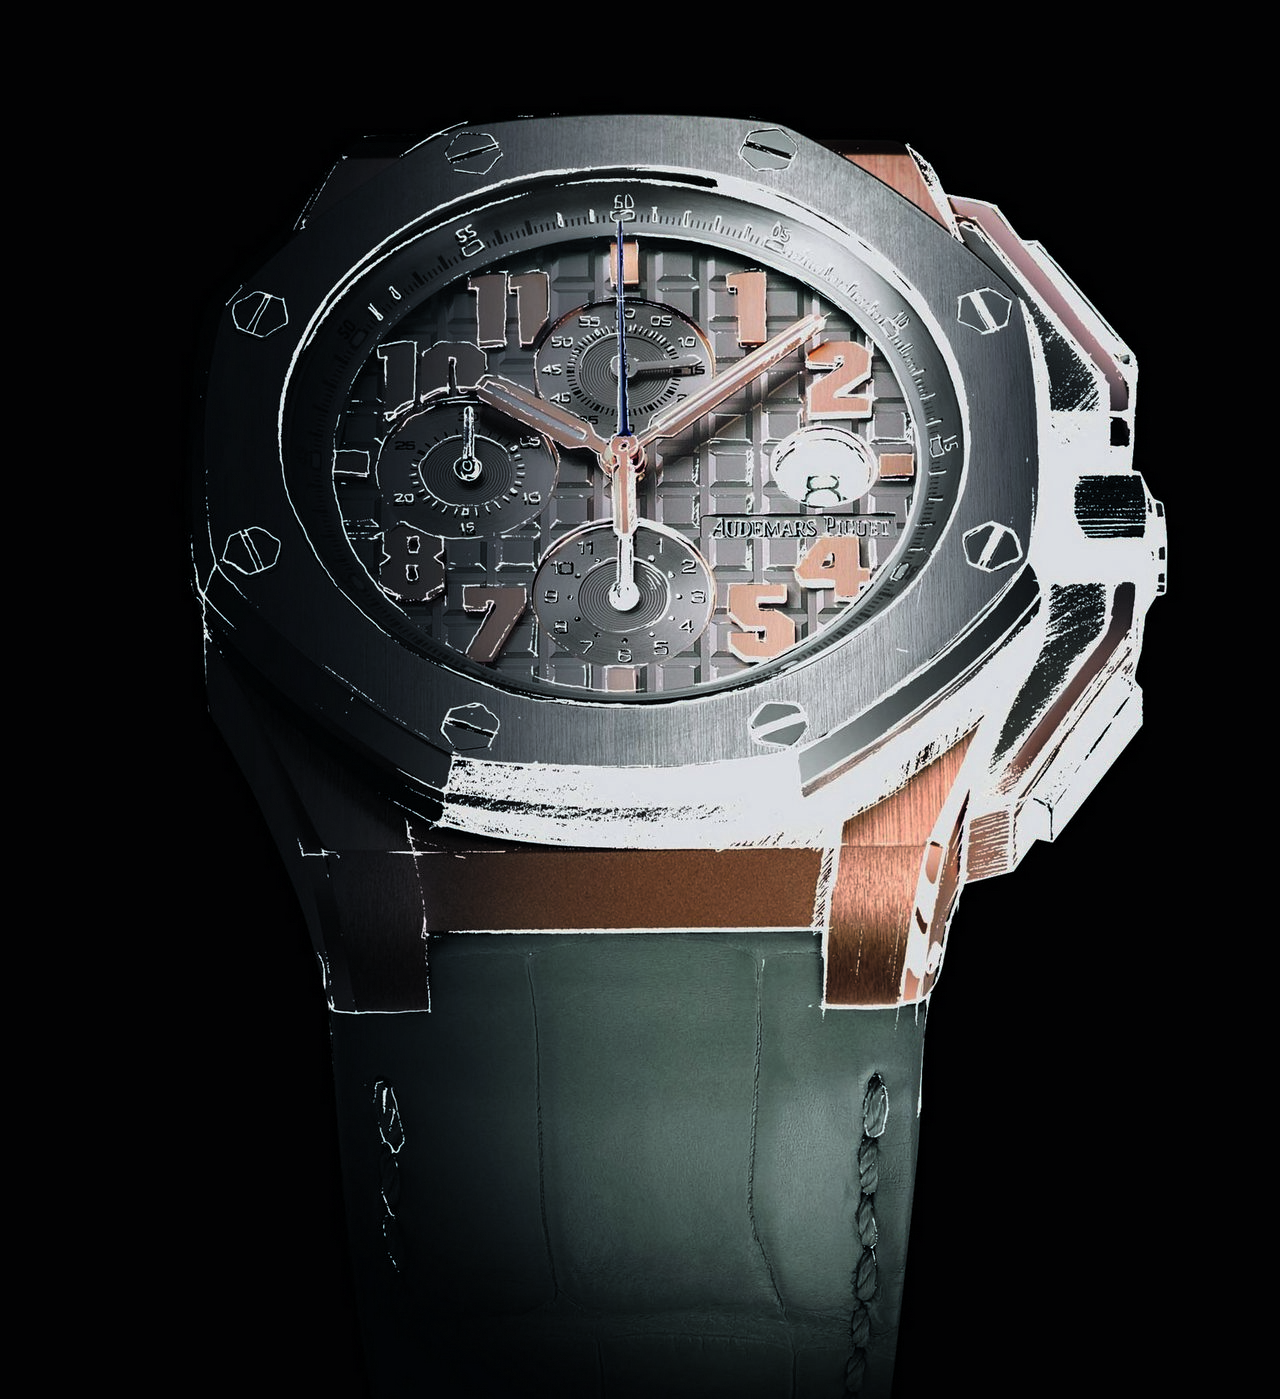 audemars-piguet-royal-oak-offshore-lebron-james-limited-edition_110-100